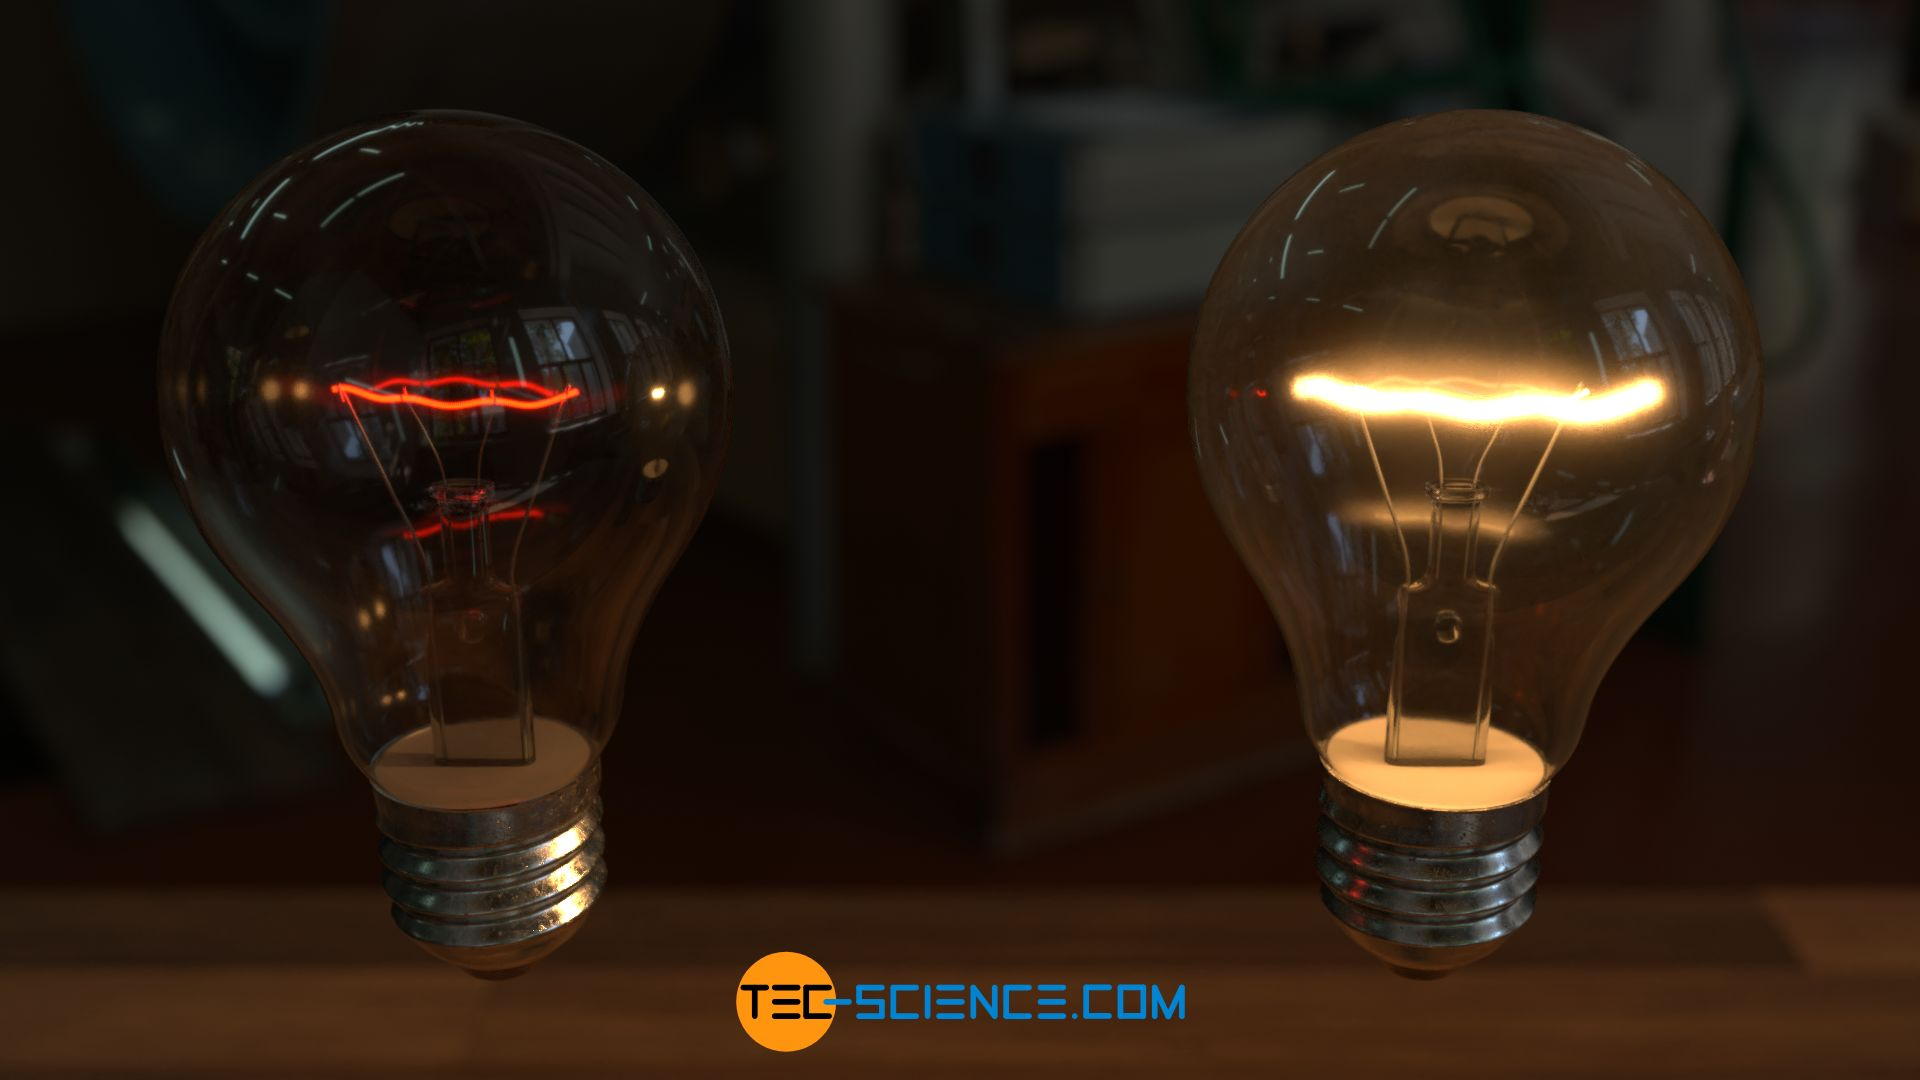 Thermal radiation of a light bulb at different temperatures